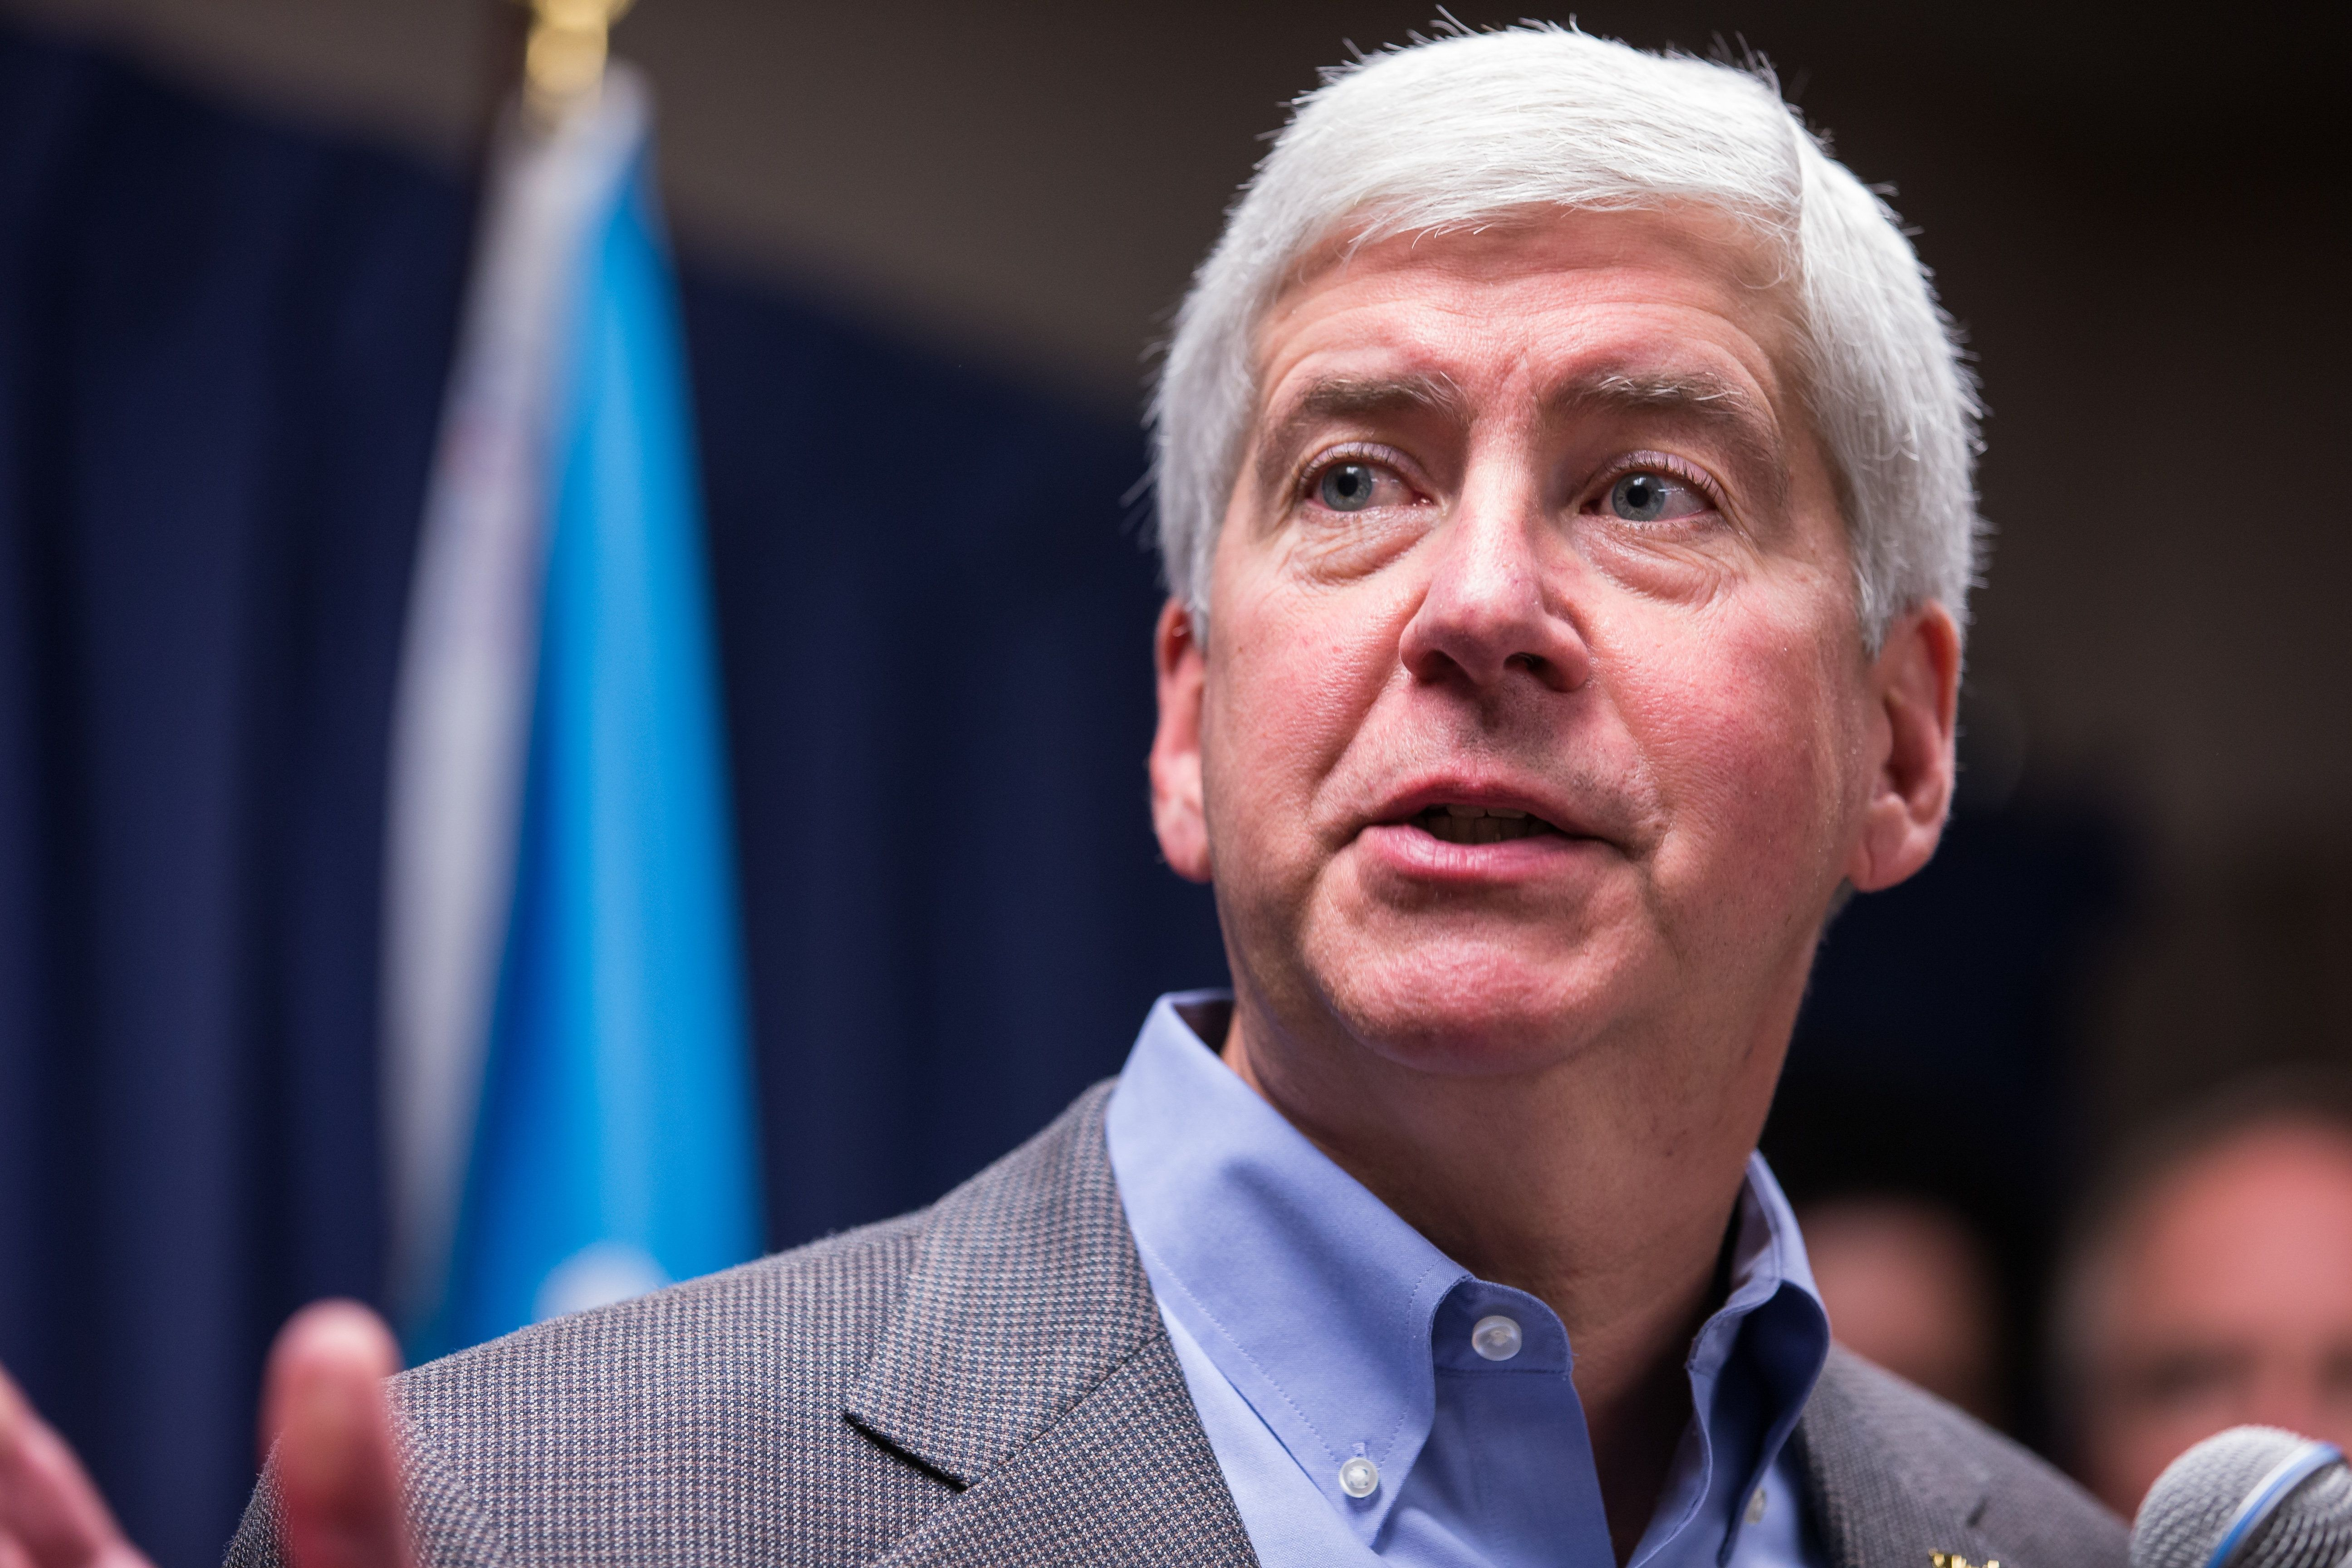 Michigan Gov. Rick Snyder speaks to the media regarding the status of the Flint water crisis on Jan. 27 at Flint City Ha